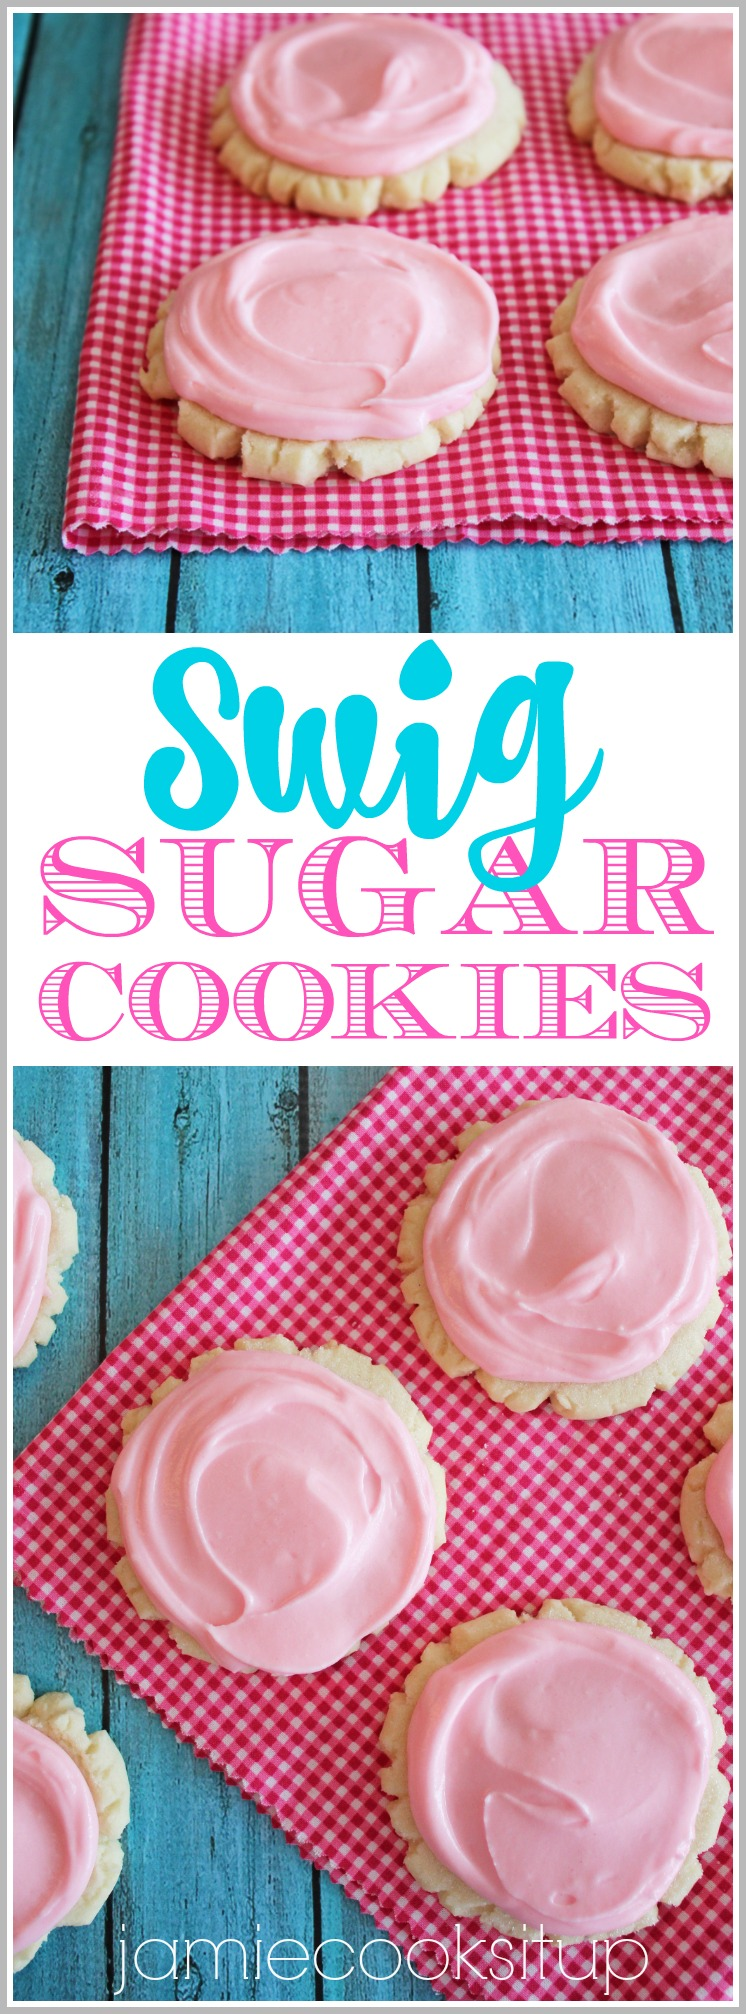 Swig Sugar Cookies from Jamie Cooks It Up!!